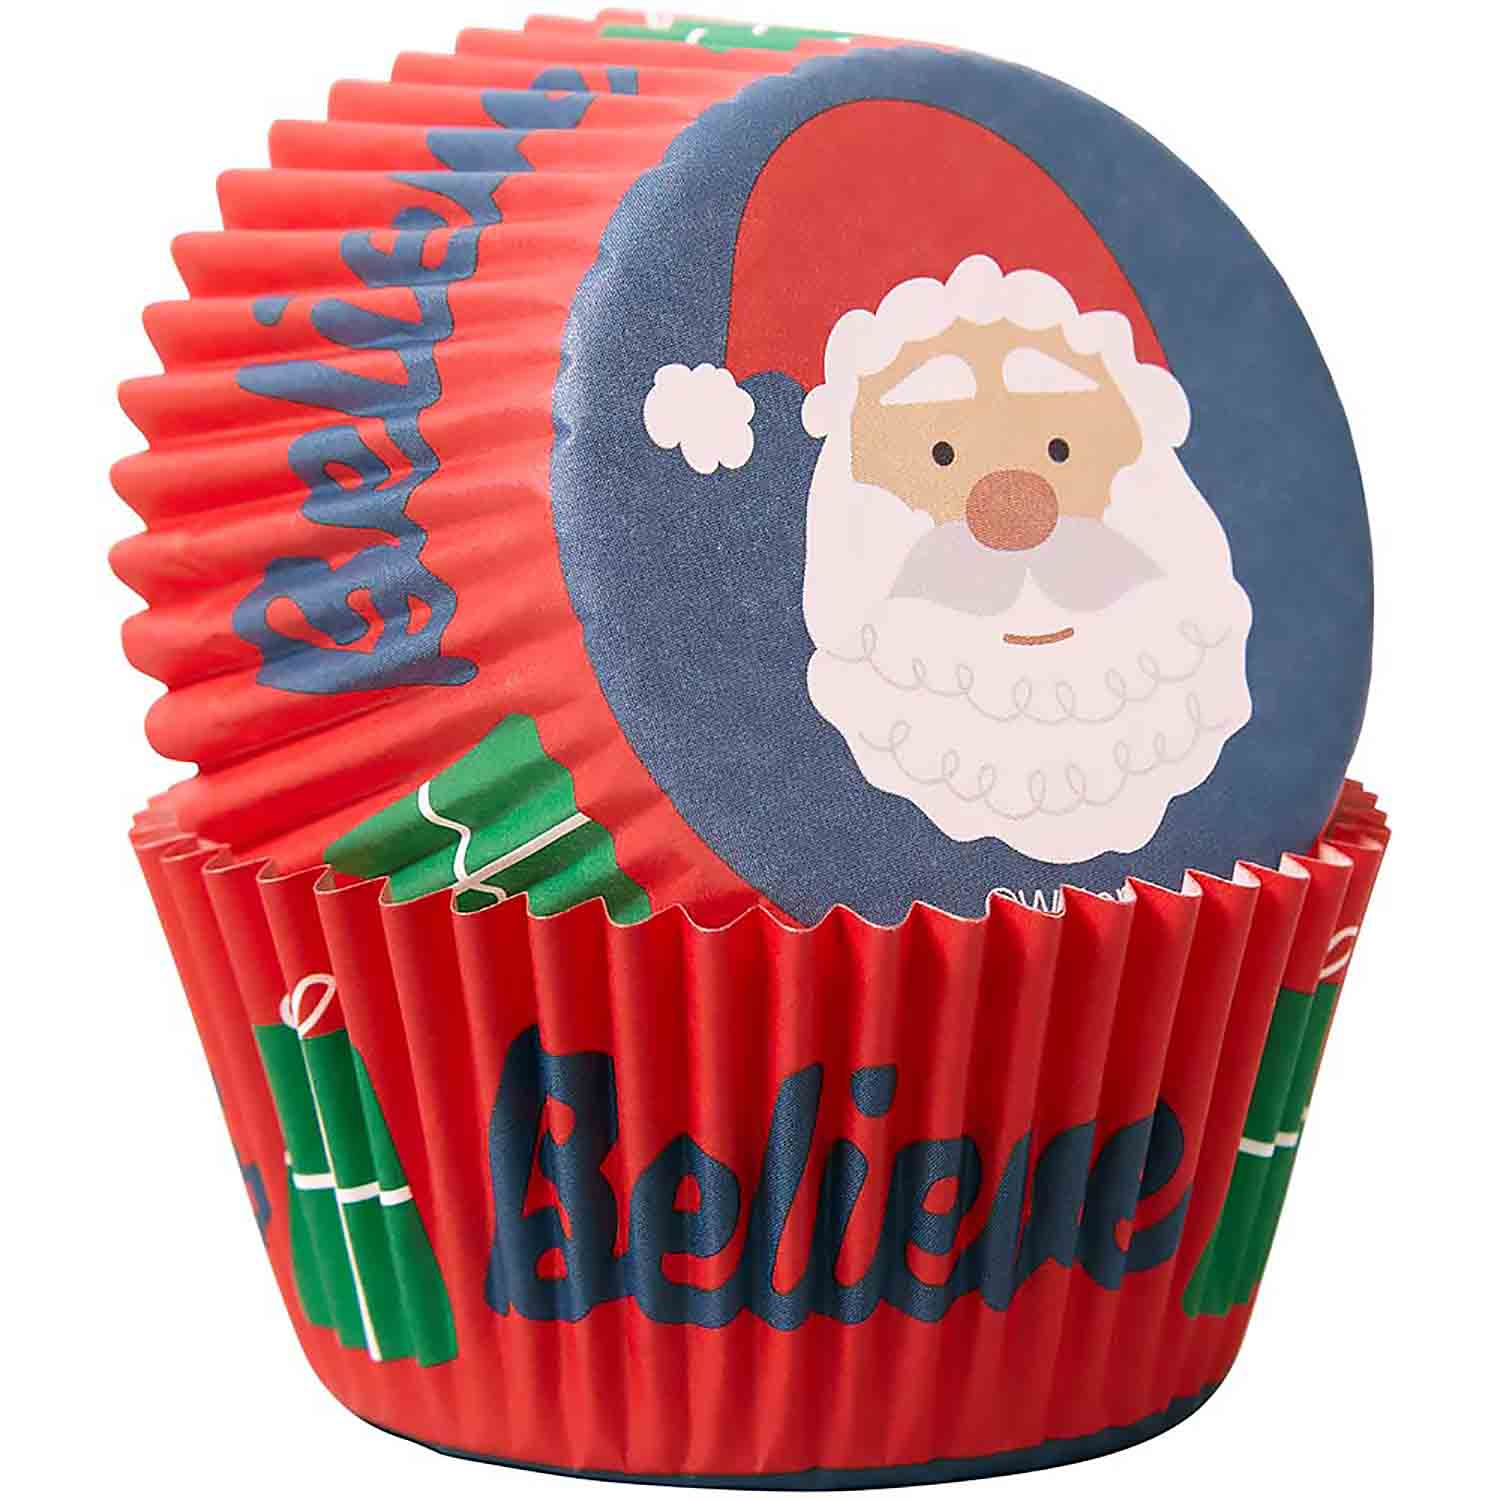 Santa Claus Believe Standard Baking Cups